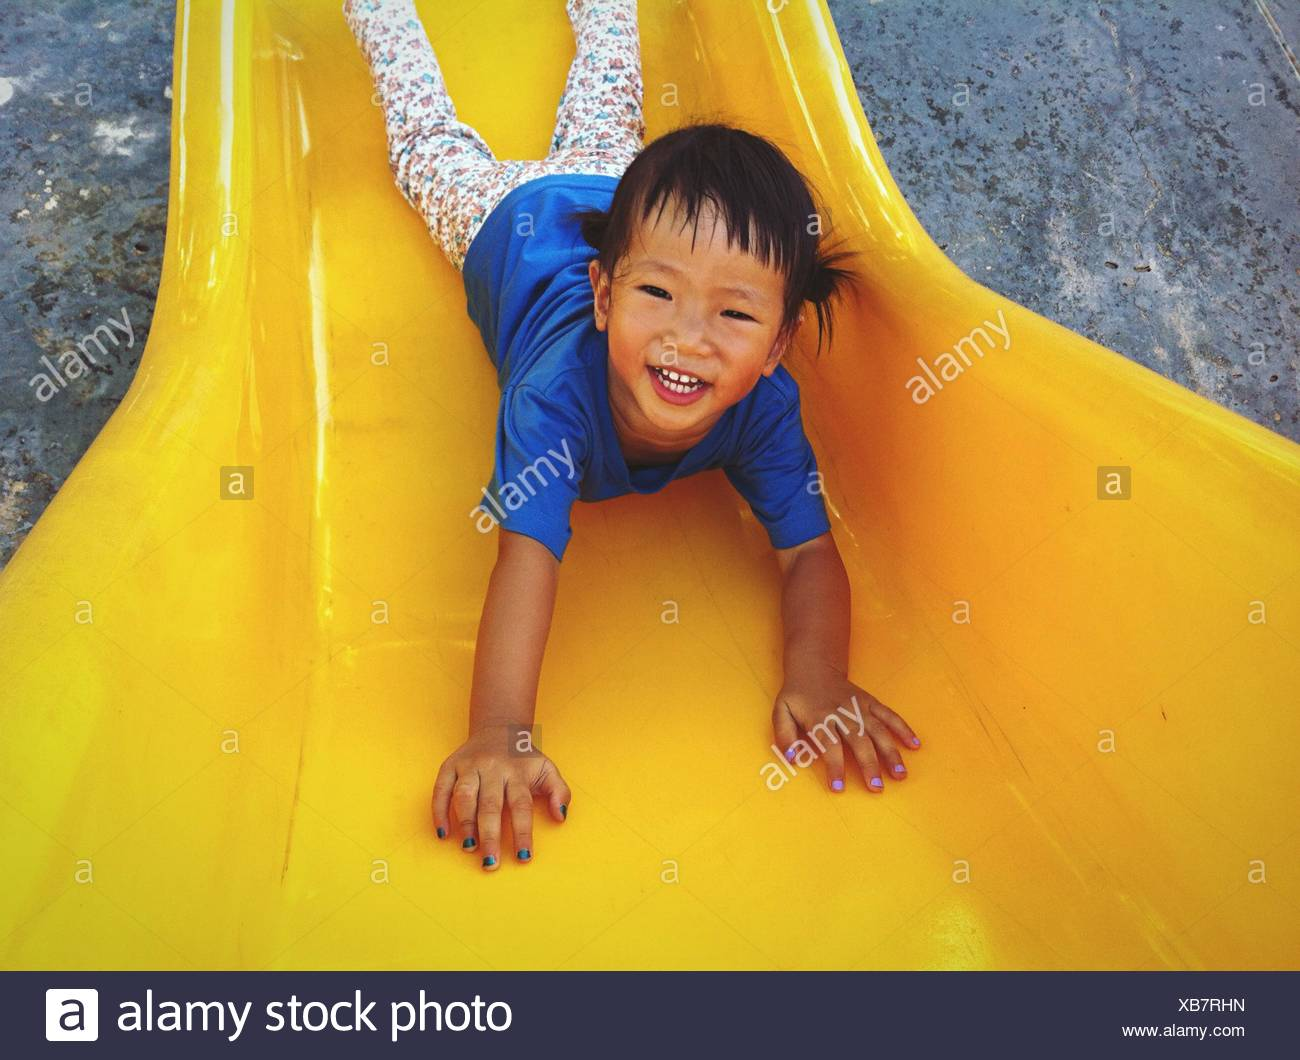 Portrait Of Happy Girl Playing On Yellow Diapositive dans Jeux pour Enfants Photo Stock